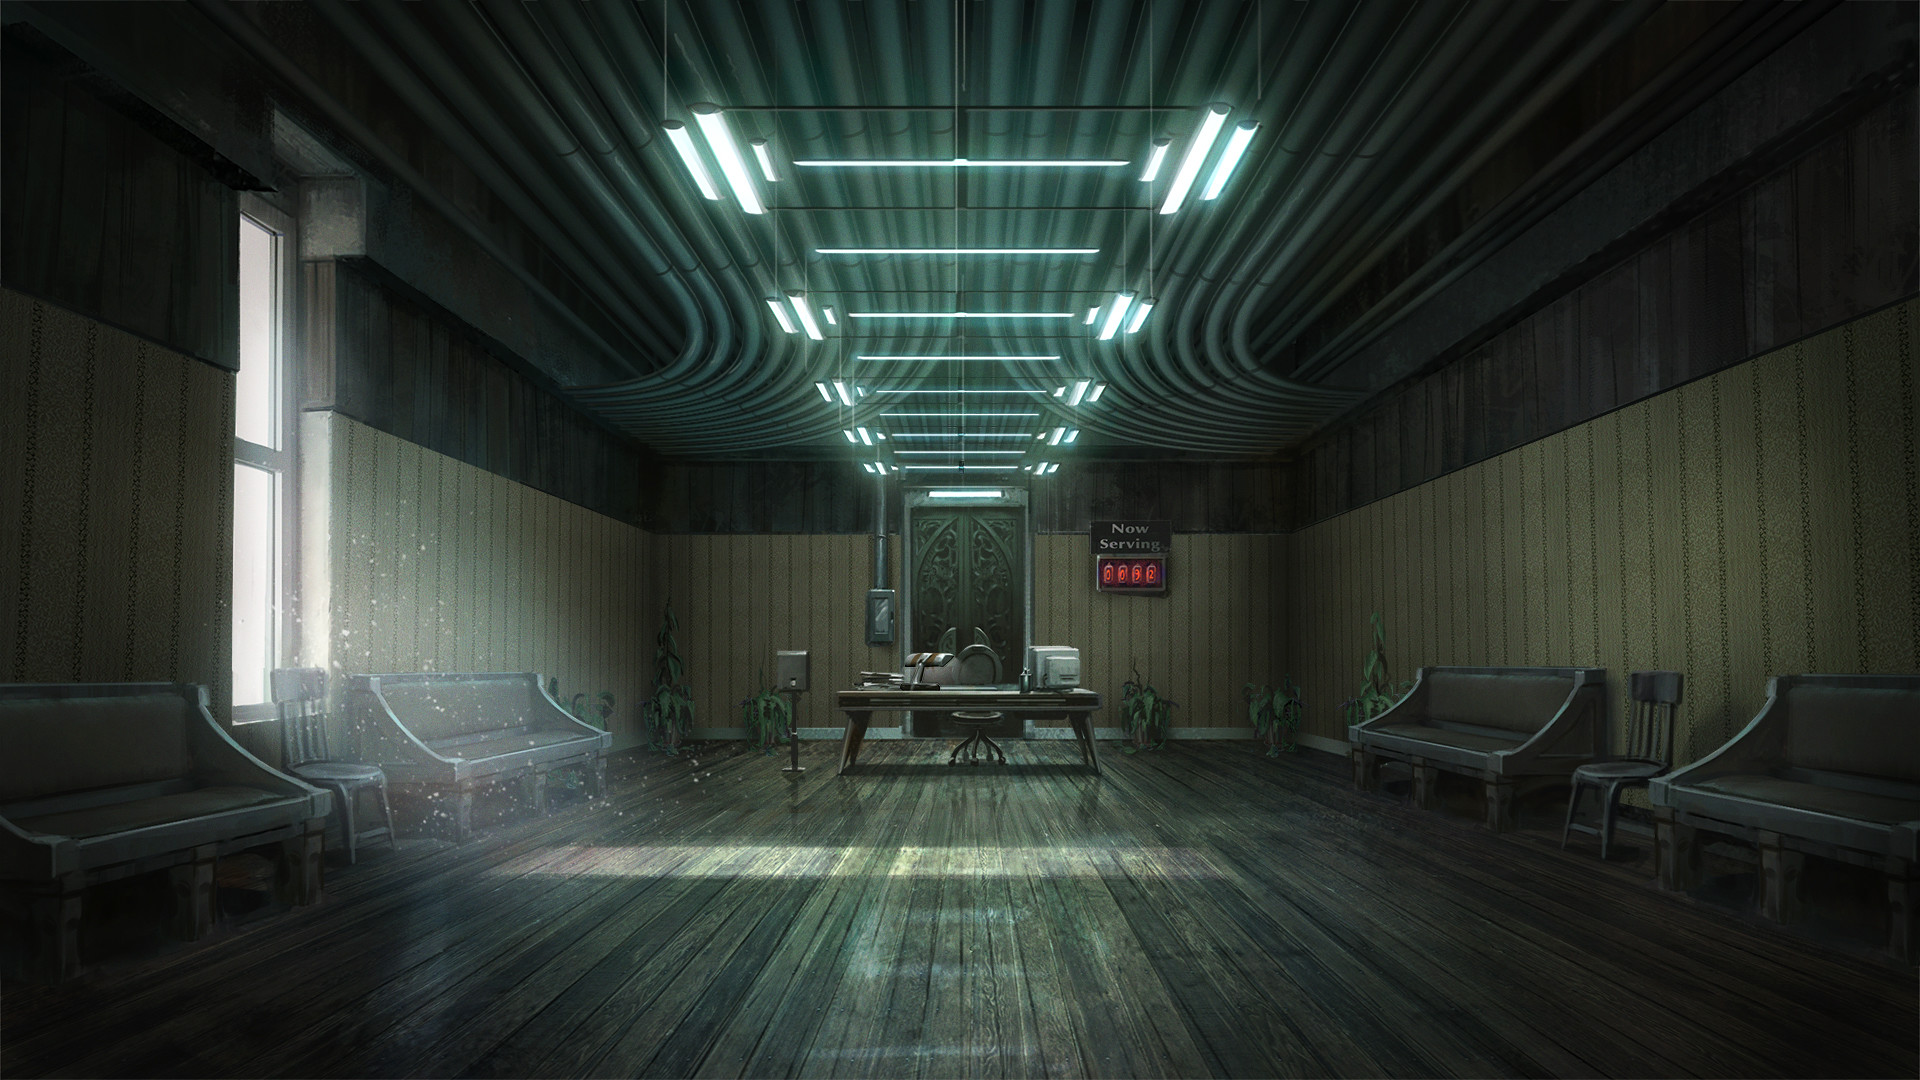 Klaus pillon waitingroom rtks v2